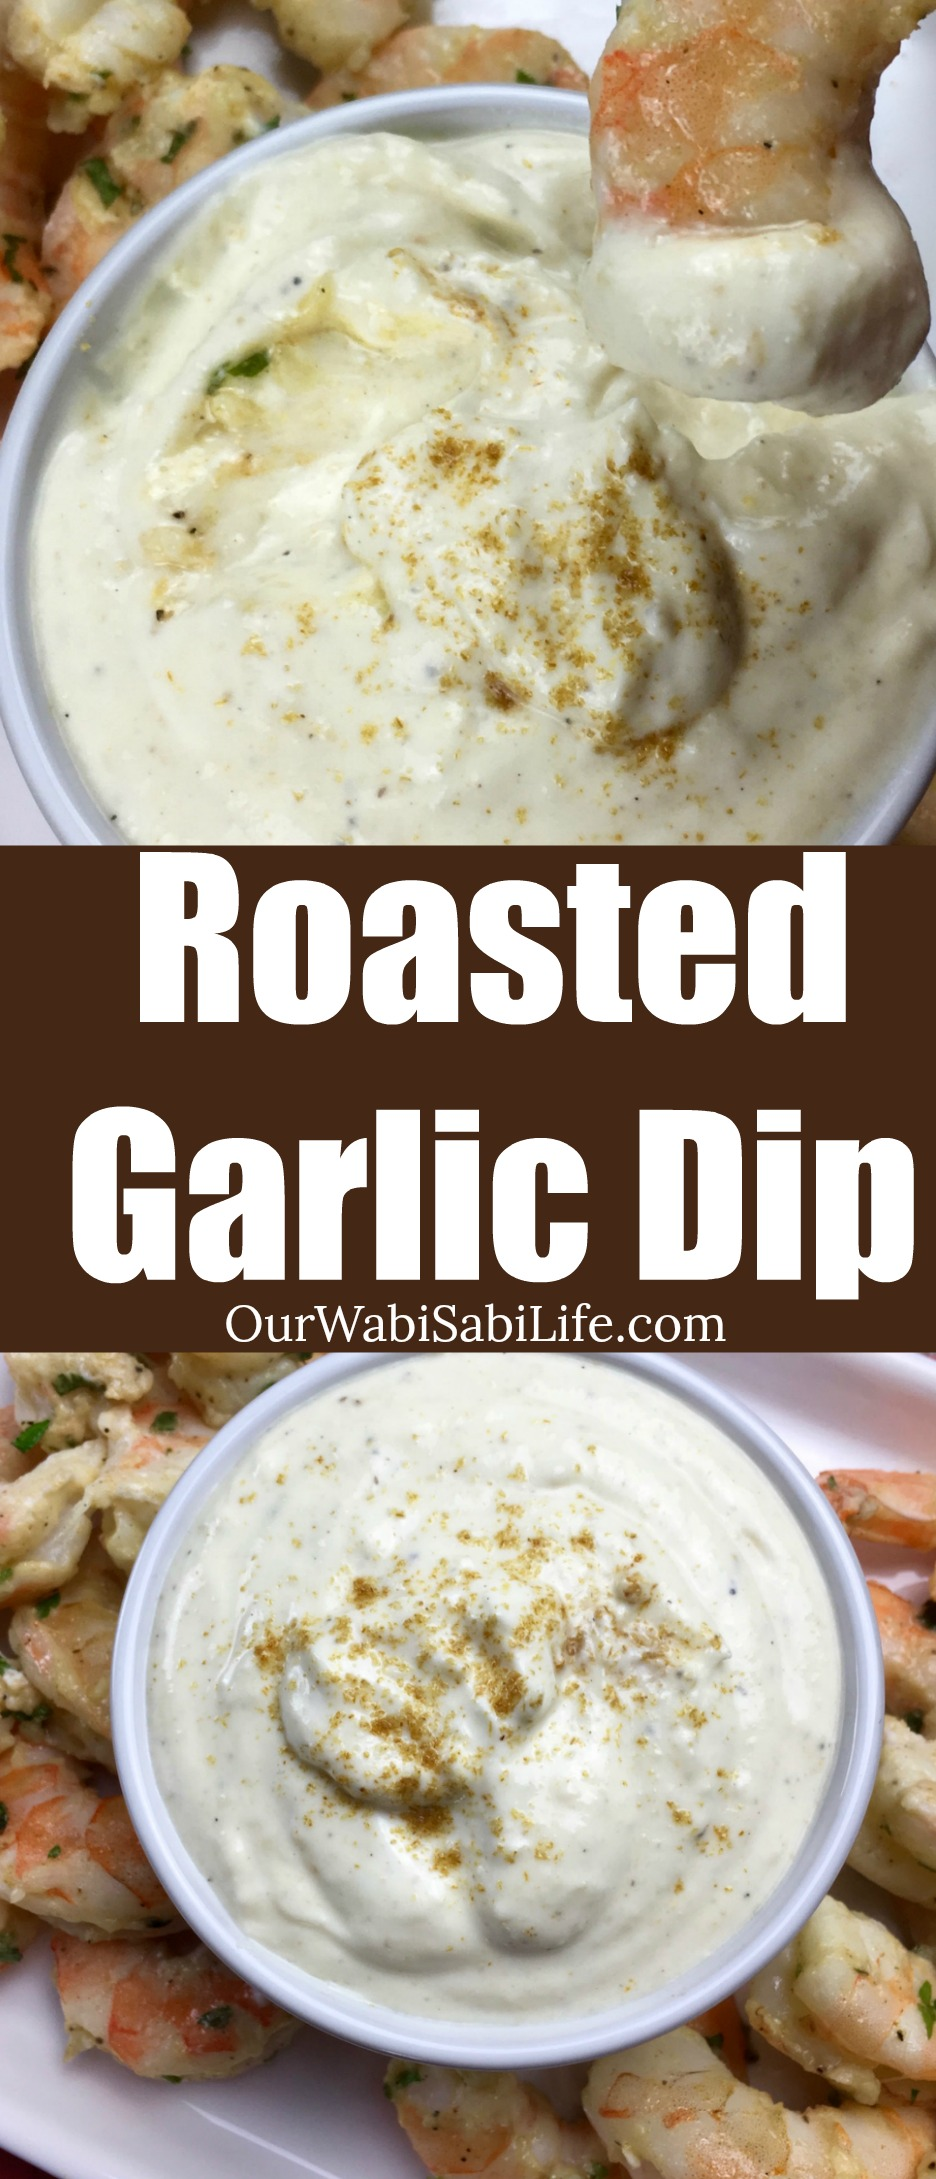 Looking for a savory dip? This roasted garlic dip is great with vegetables, on a sandwich or with shrimp. Make a batch before everyone comes over to watch the big game or for a picnic.